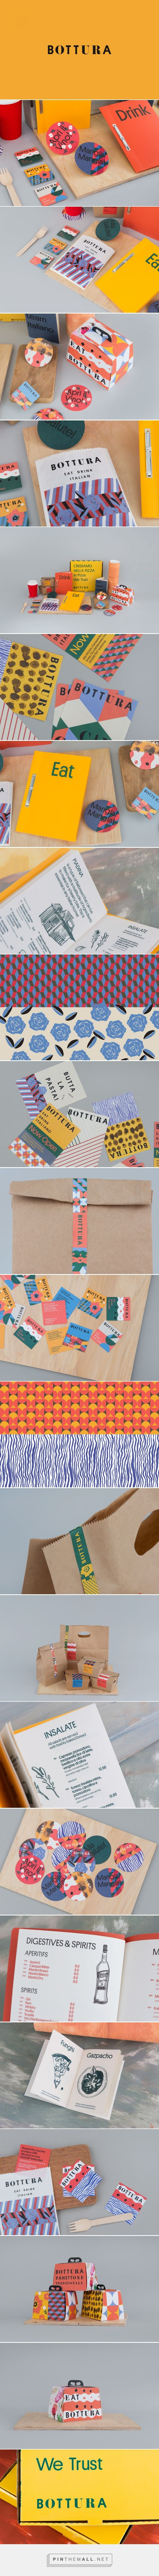 Bottura on Behance | Fivestar Branding – Design and Branding Agency &…